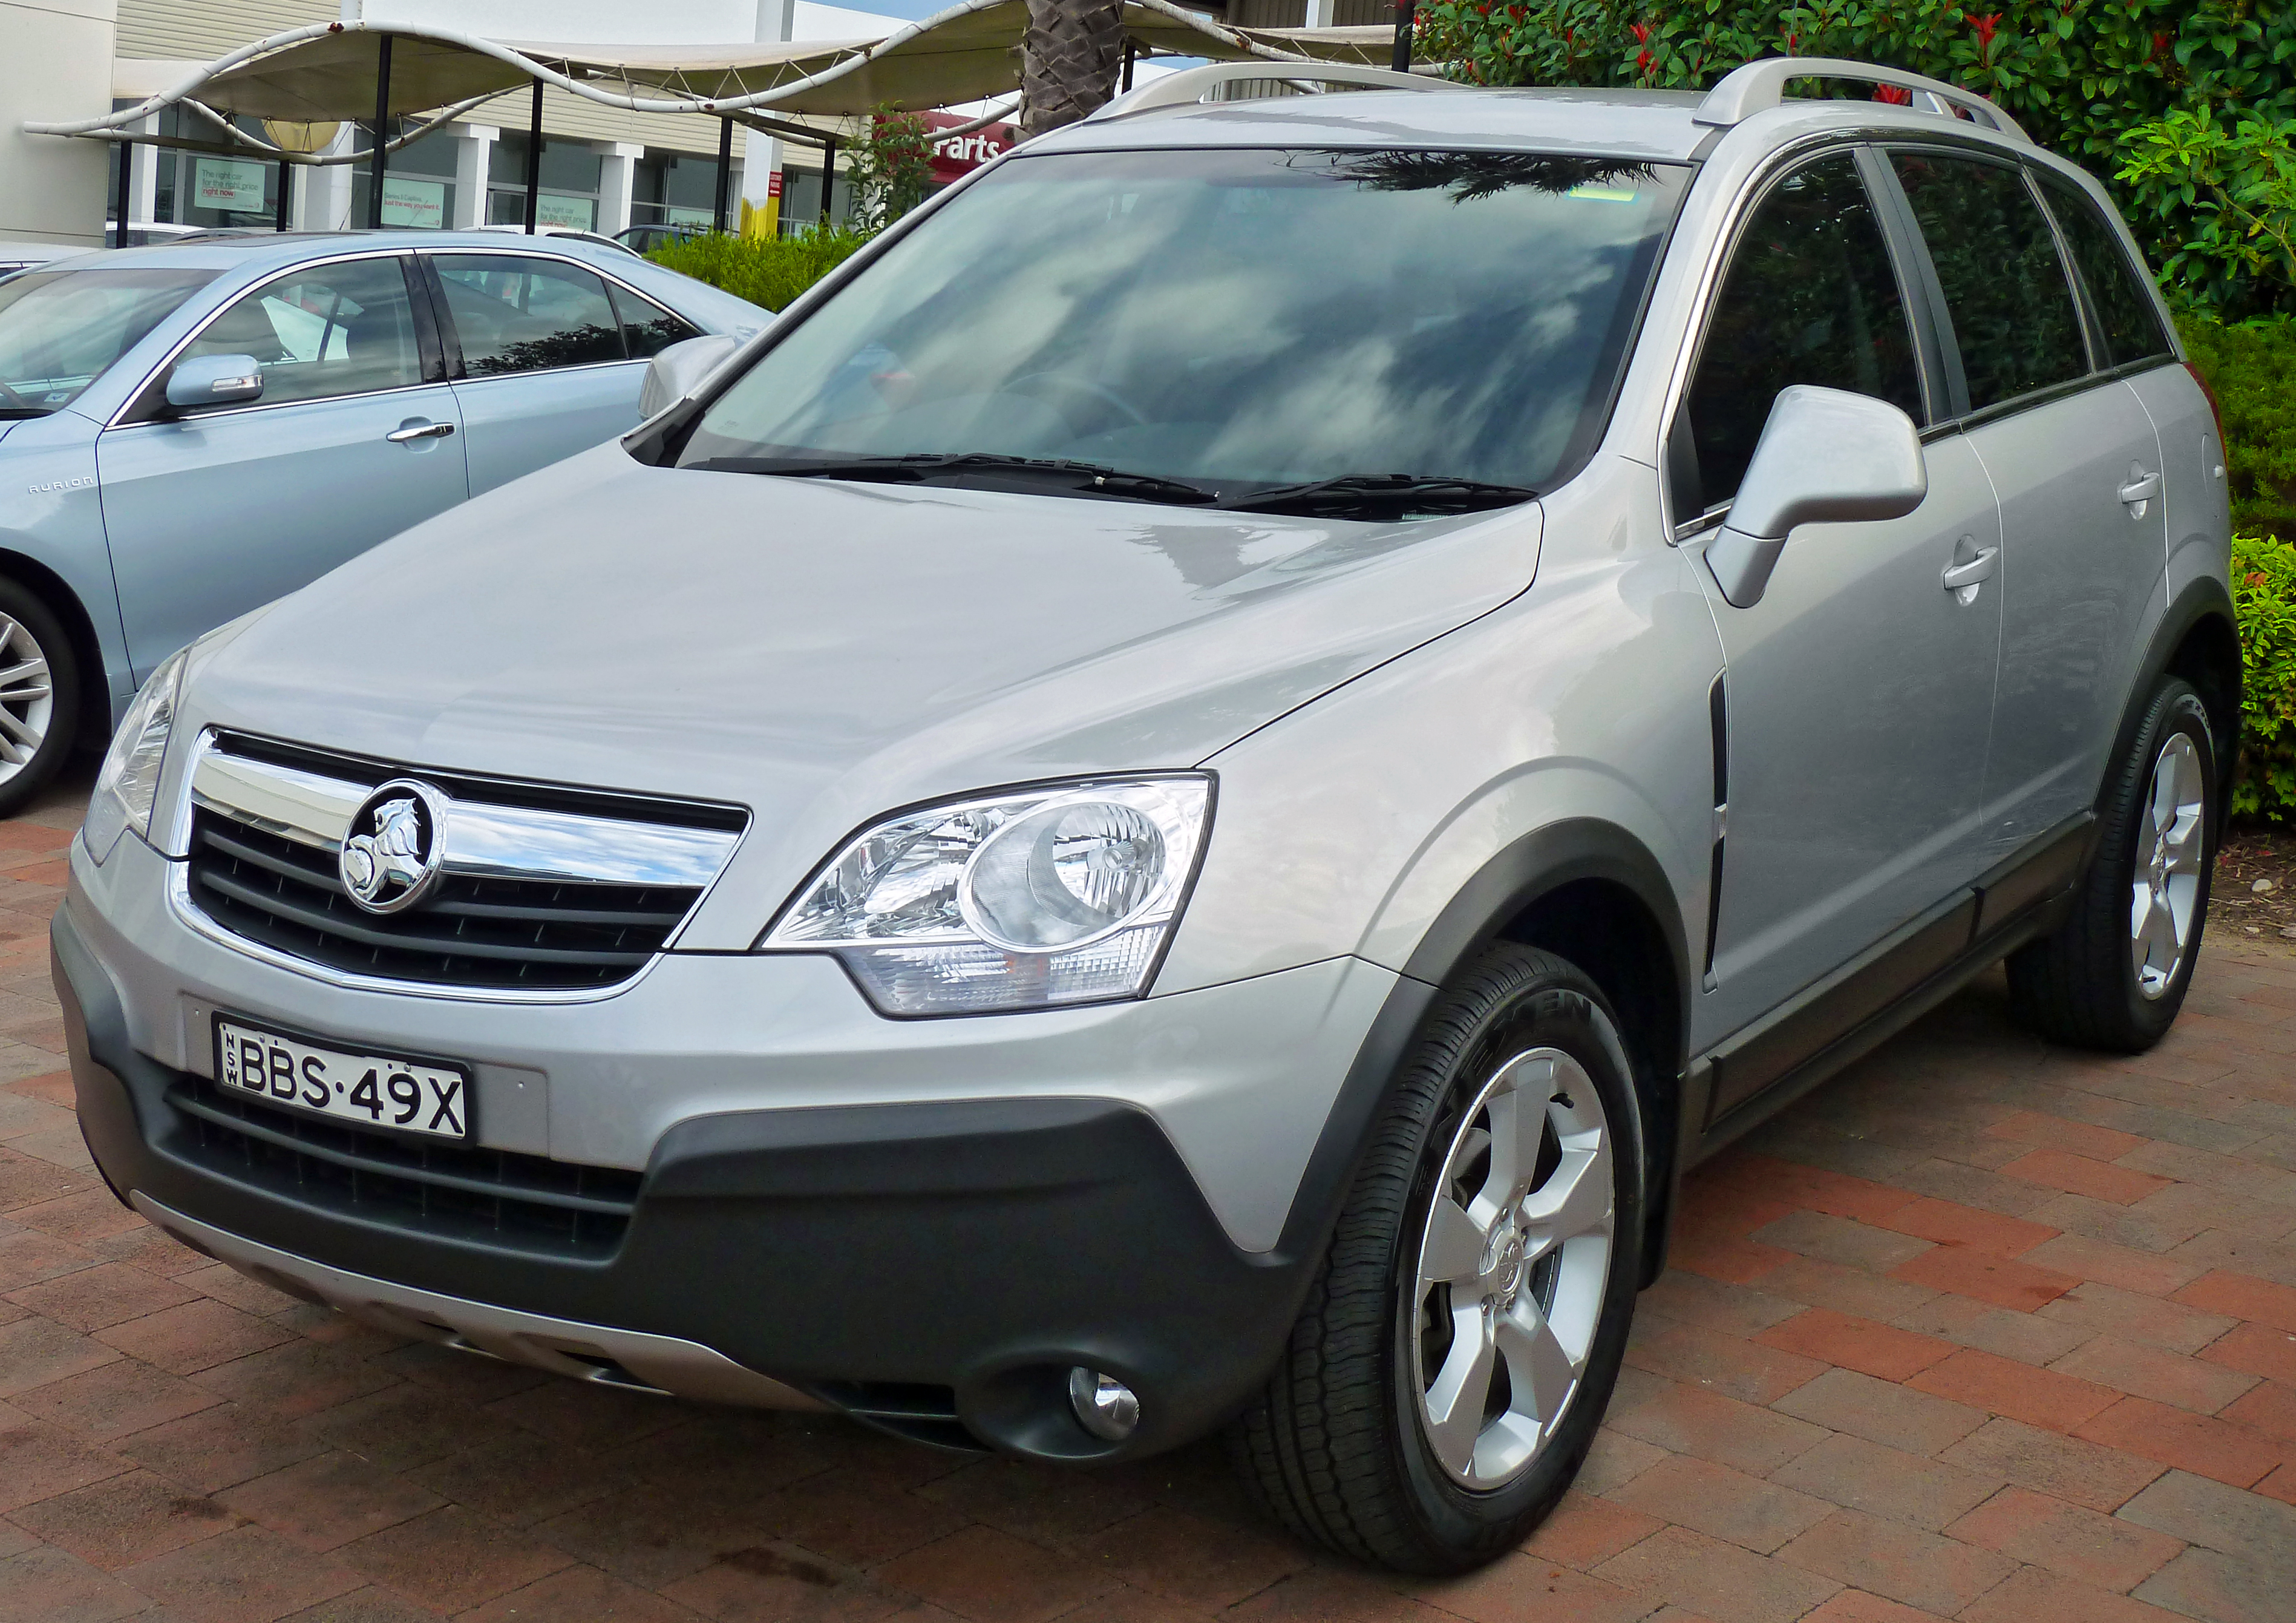 2007 Holden Captiva #8